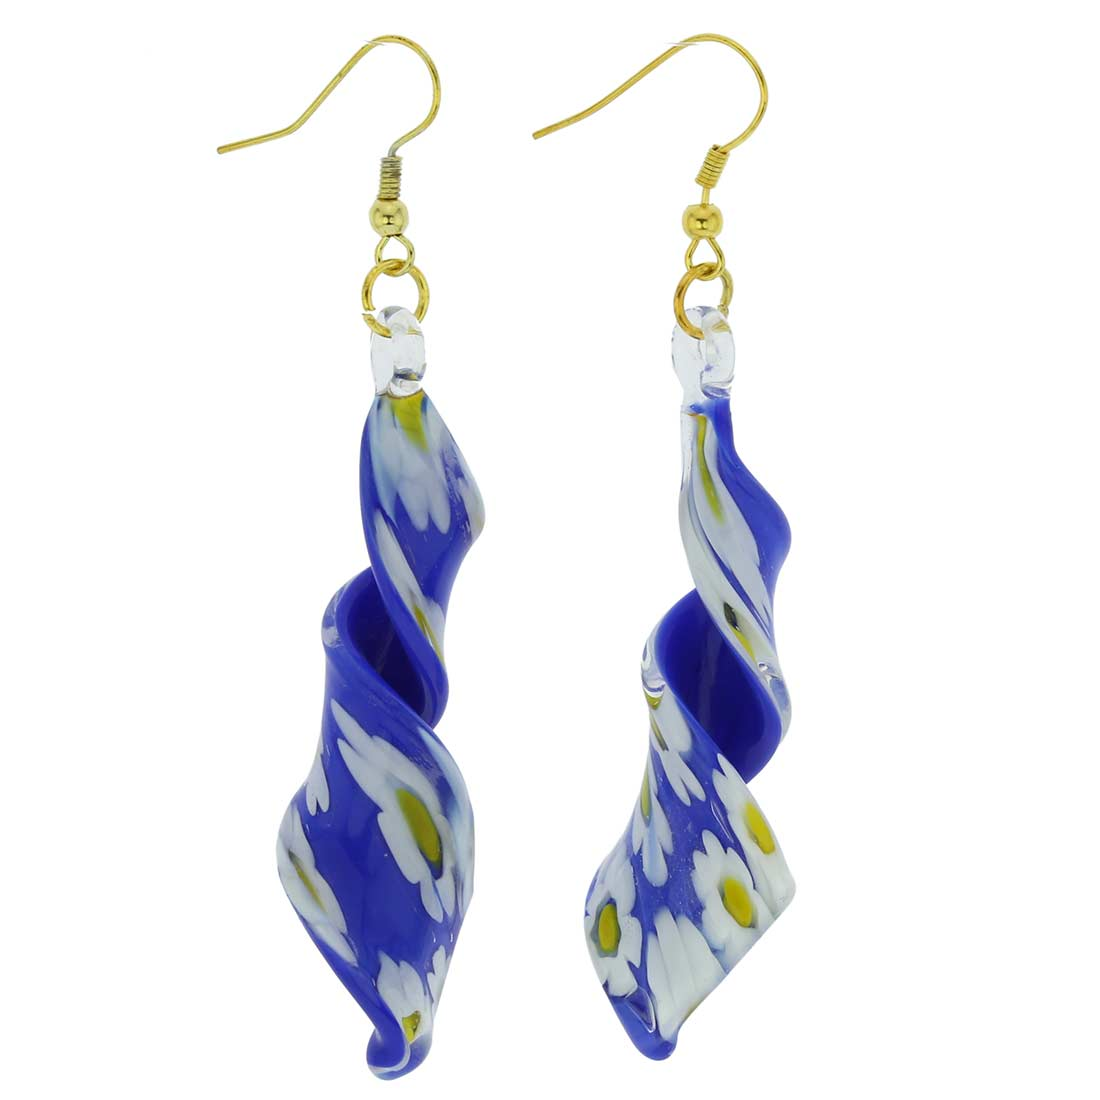 Blue Daisy spiral earrings